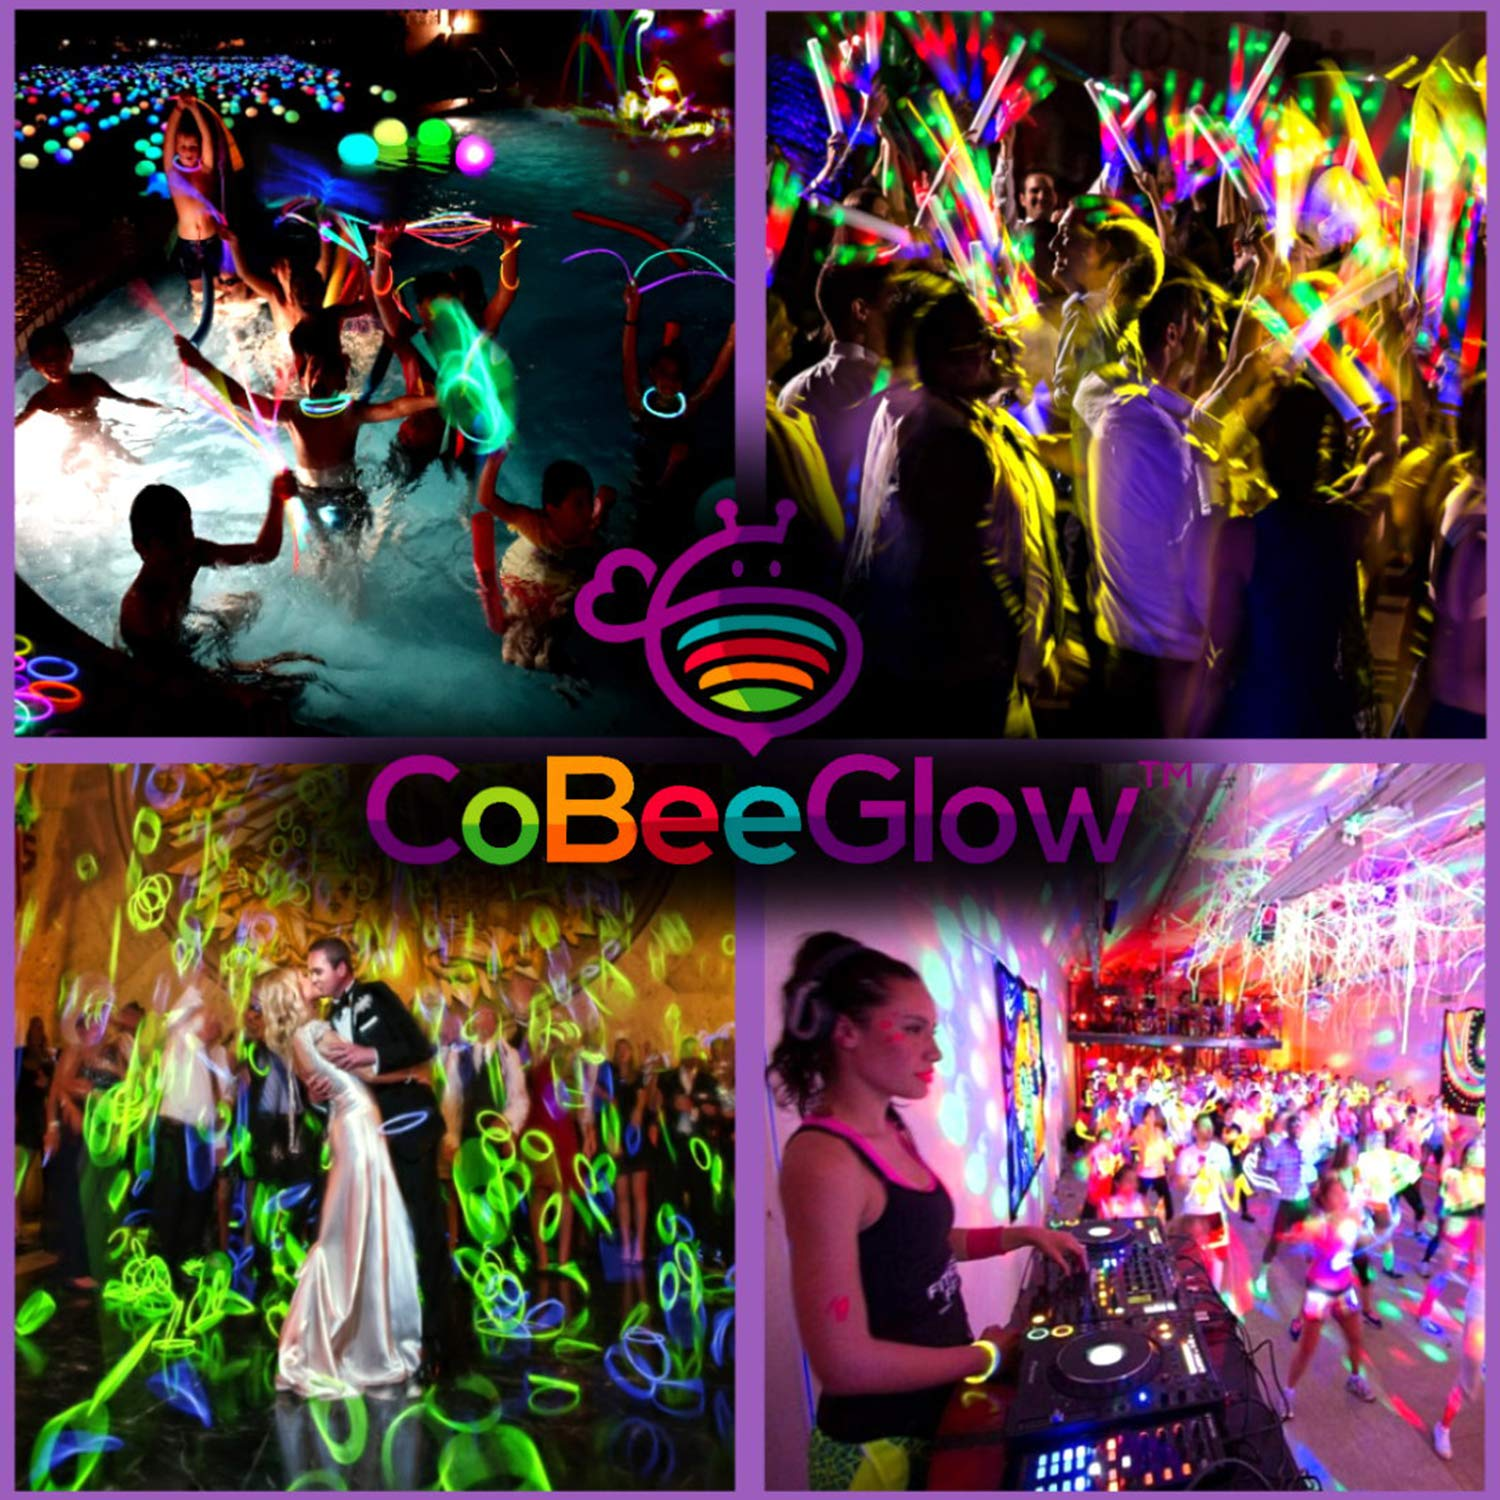 Glow Necklaces Bulk Party Supplies - 100 Glow in the Dark Necklaces - 22 Inch Glow Sticks - Extra Bright Neon Glow Necklace - Strong 6mm Thick - 9 Vibrant Neon Colors - Stuffers for Kids - Mix by CoBeeGlow (Image #7)